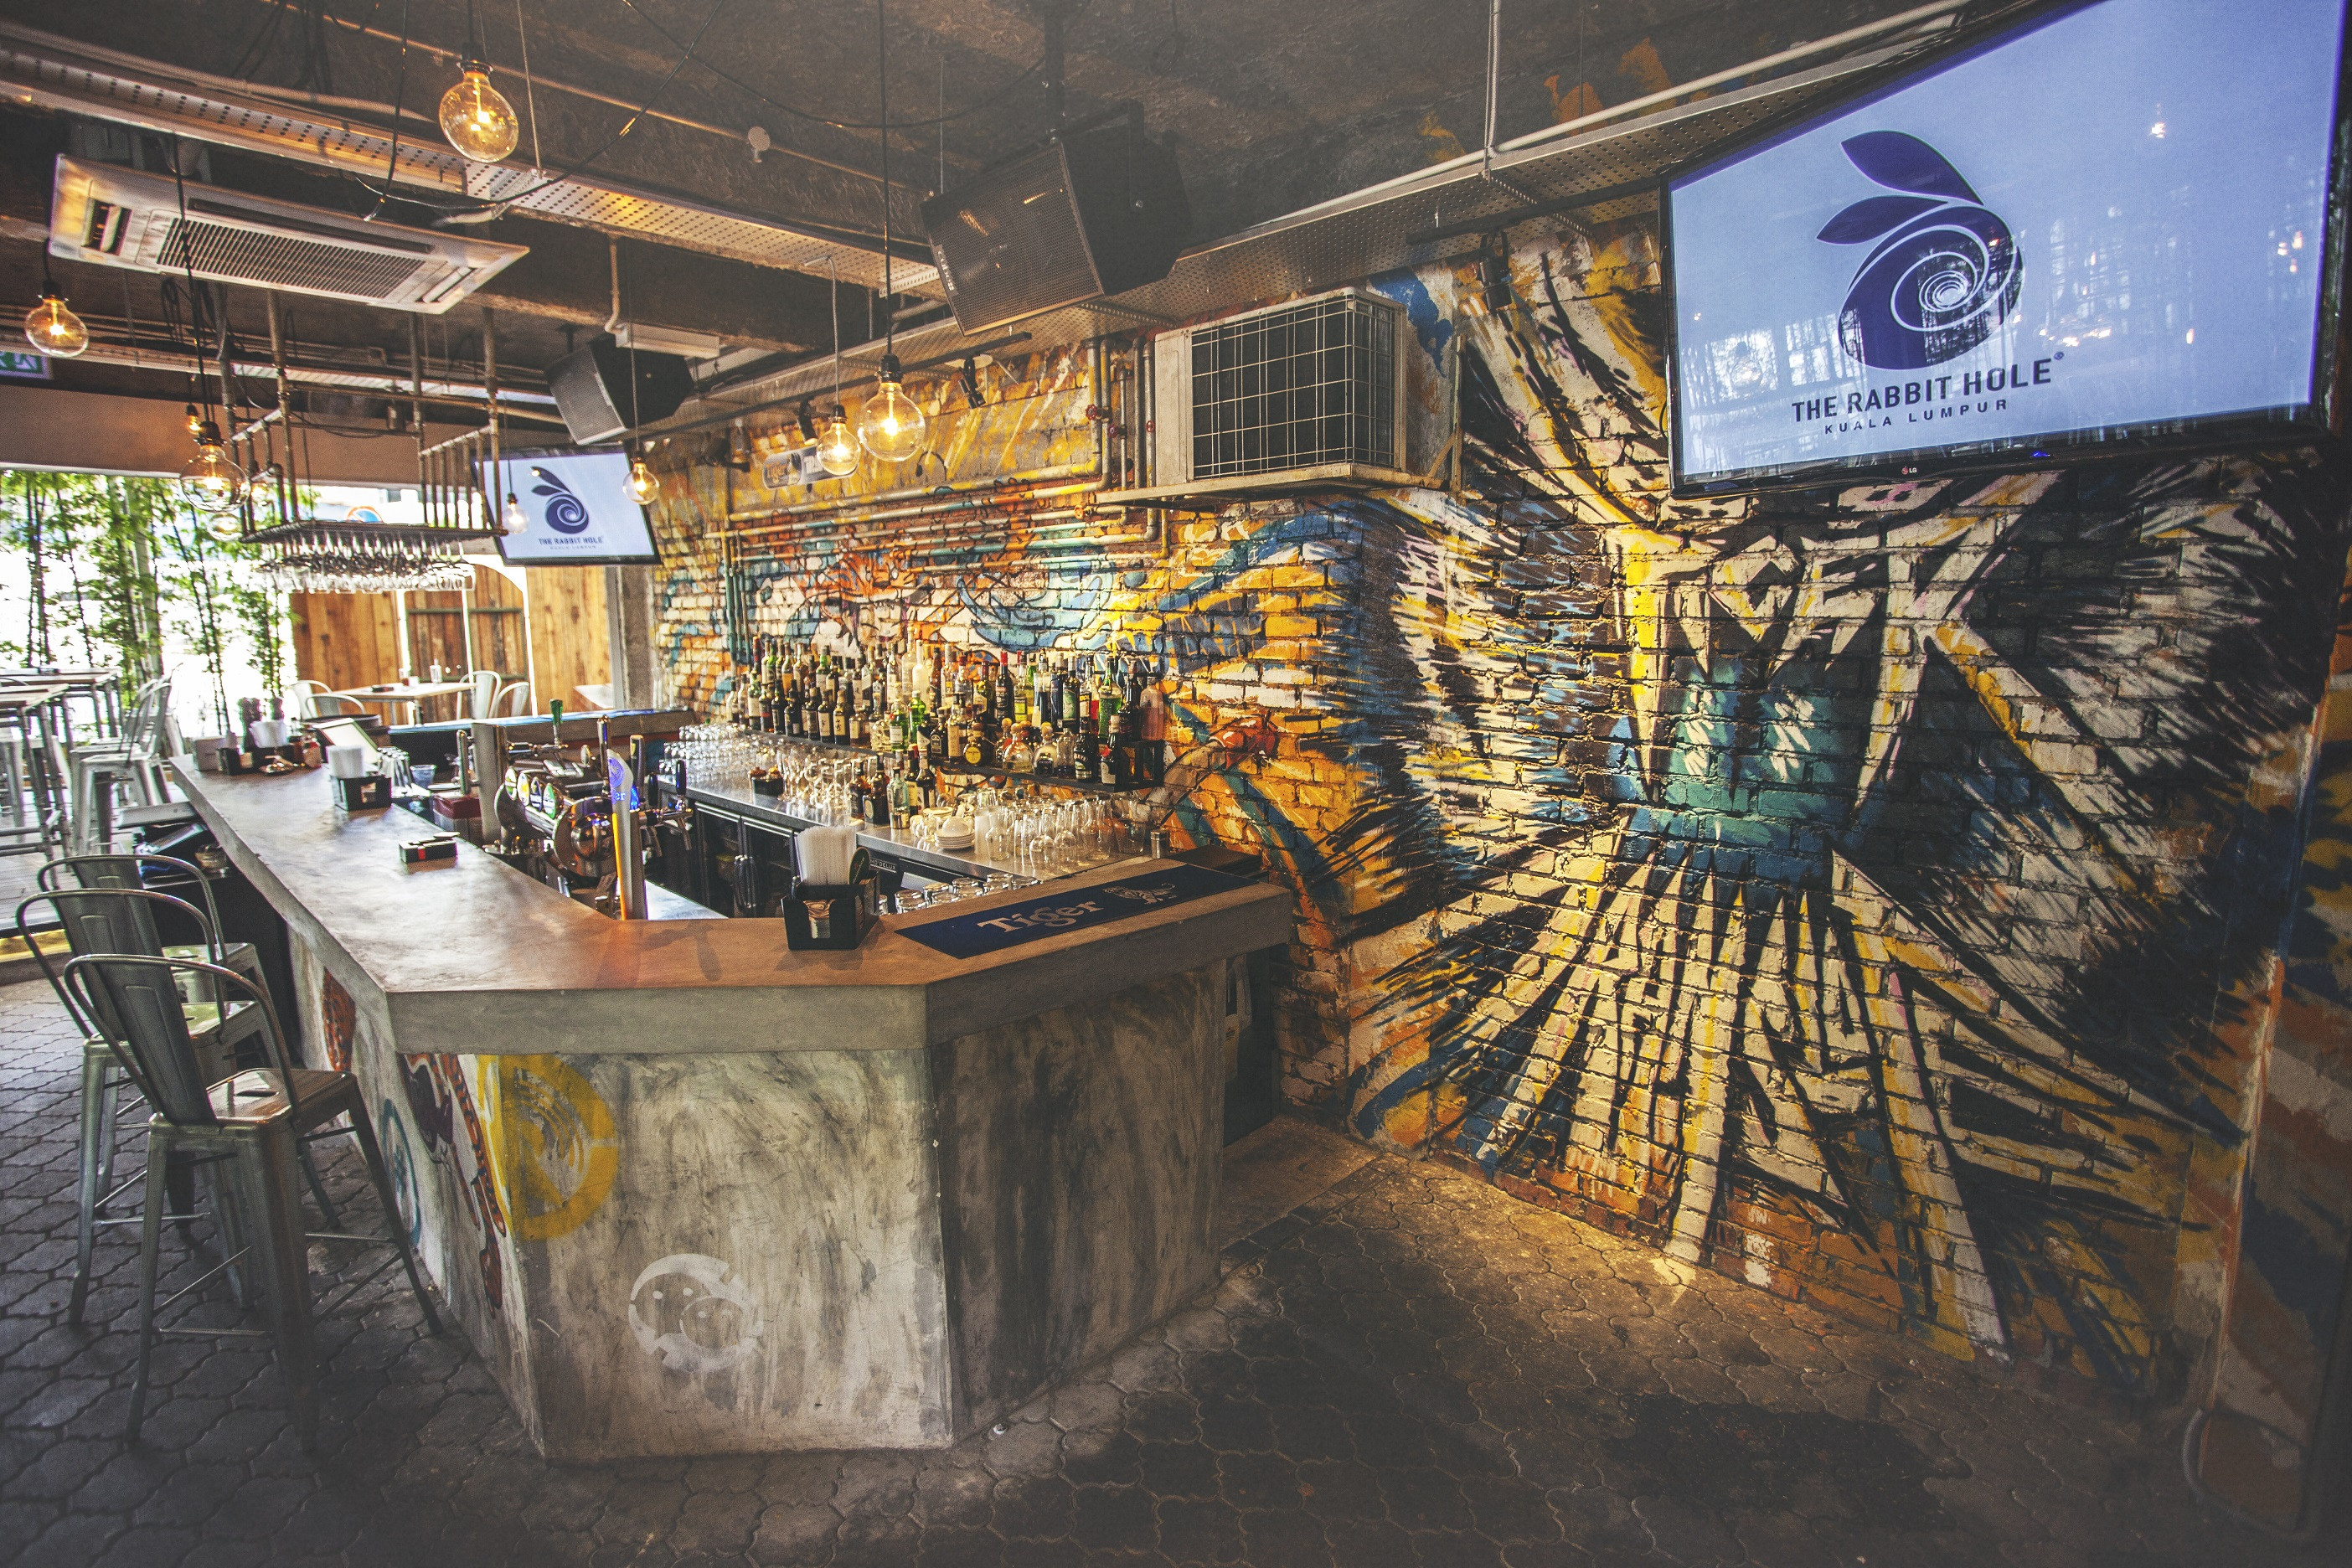 The Bar At The Rabbit Hole Features Graffiti Artwork From Global Malaysian Artists Image Via Rabbit Hole